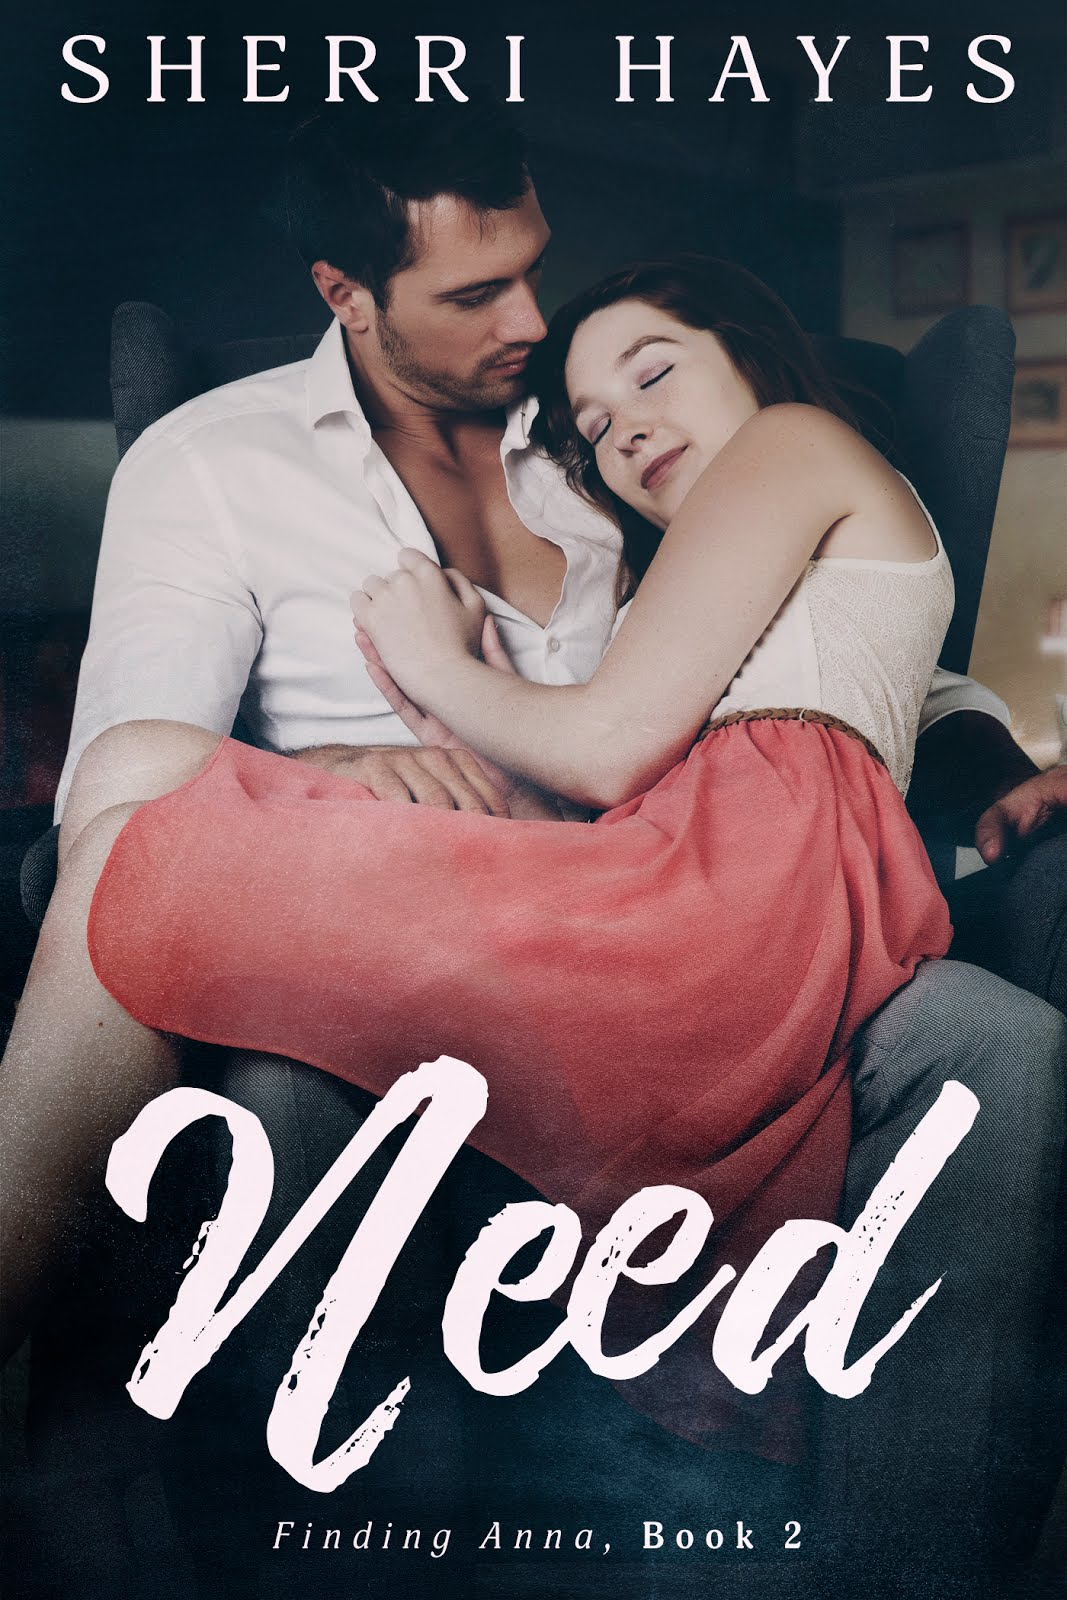 Need (Finding Anna, Book 2)